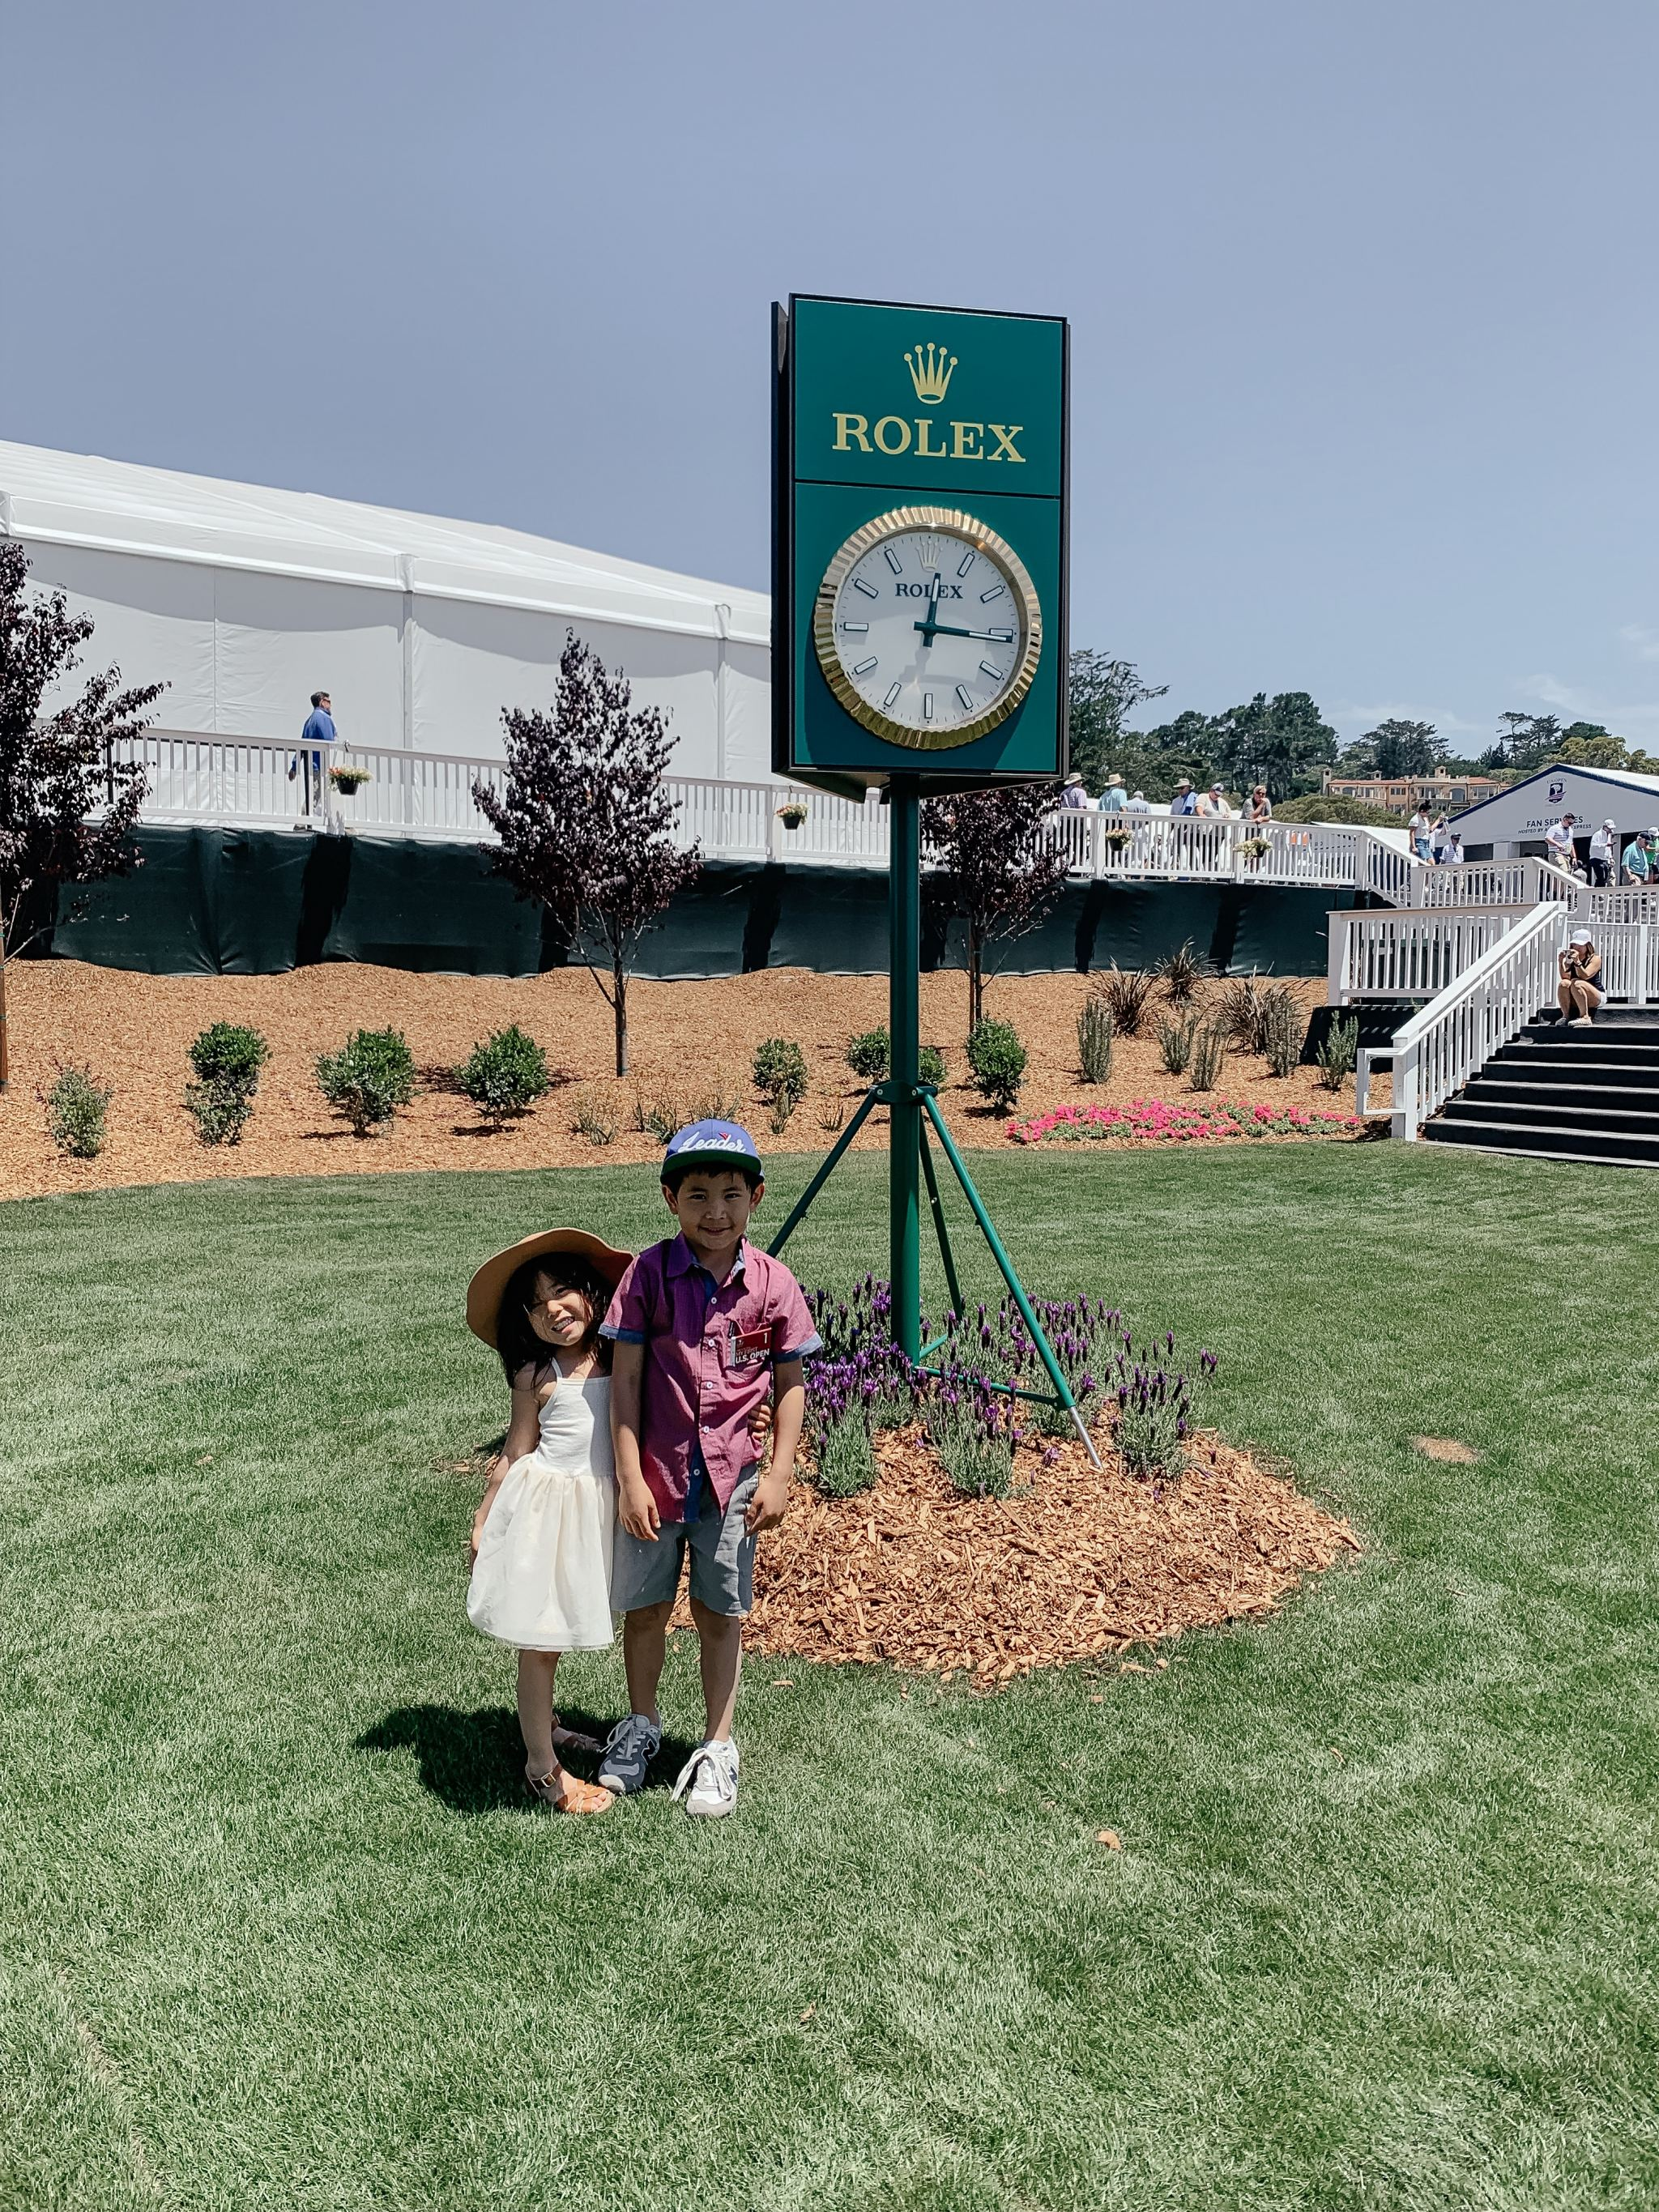 pieces_of_emerald_us_open_golf_rolex